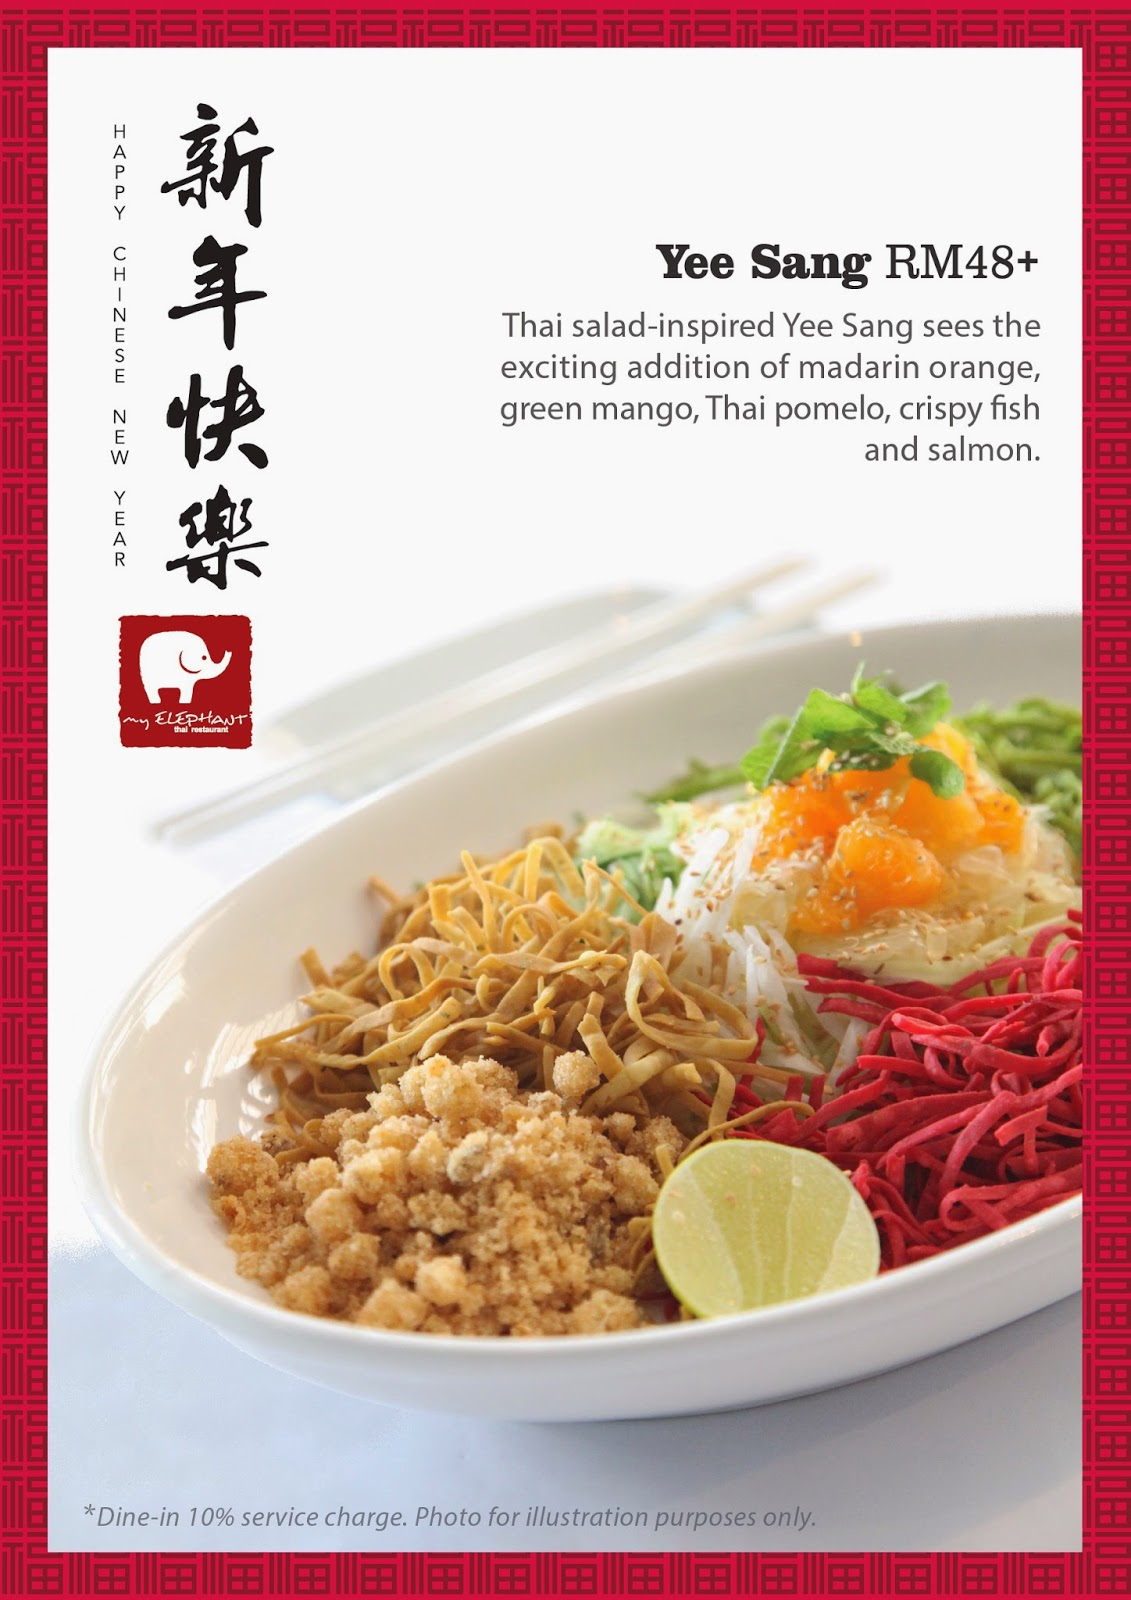 Chinese Food Promotion Ideas